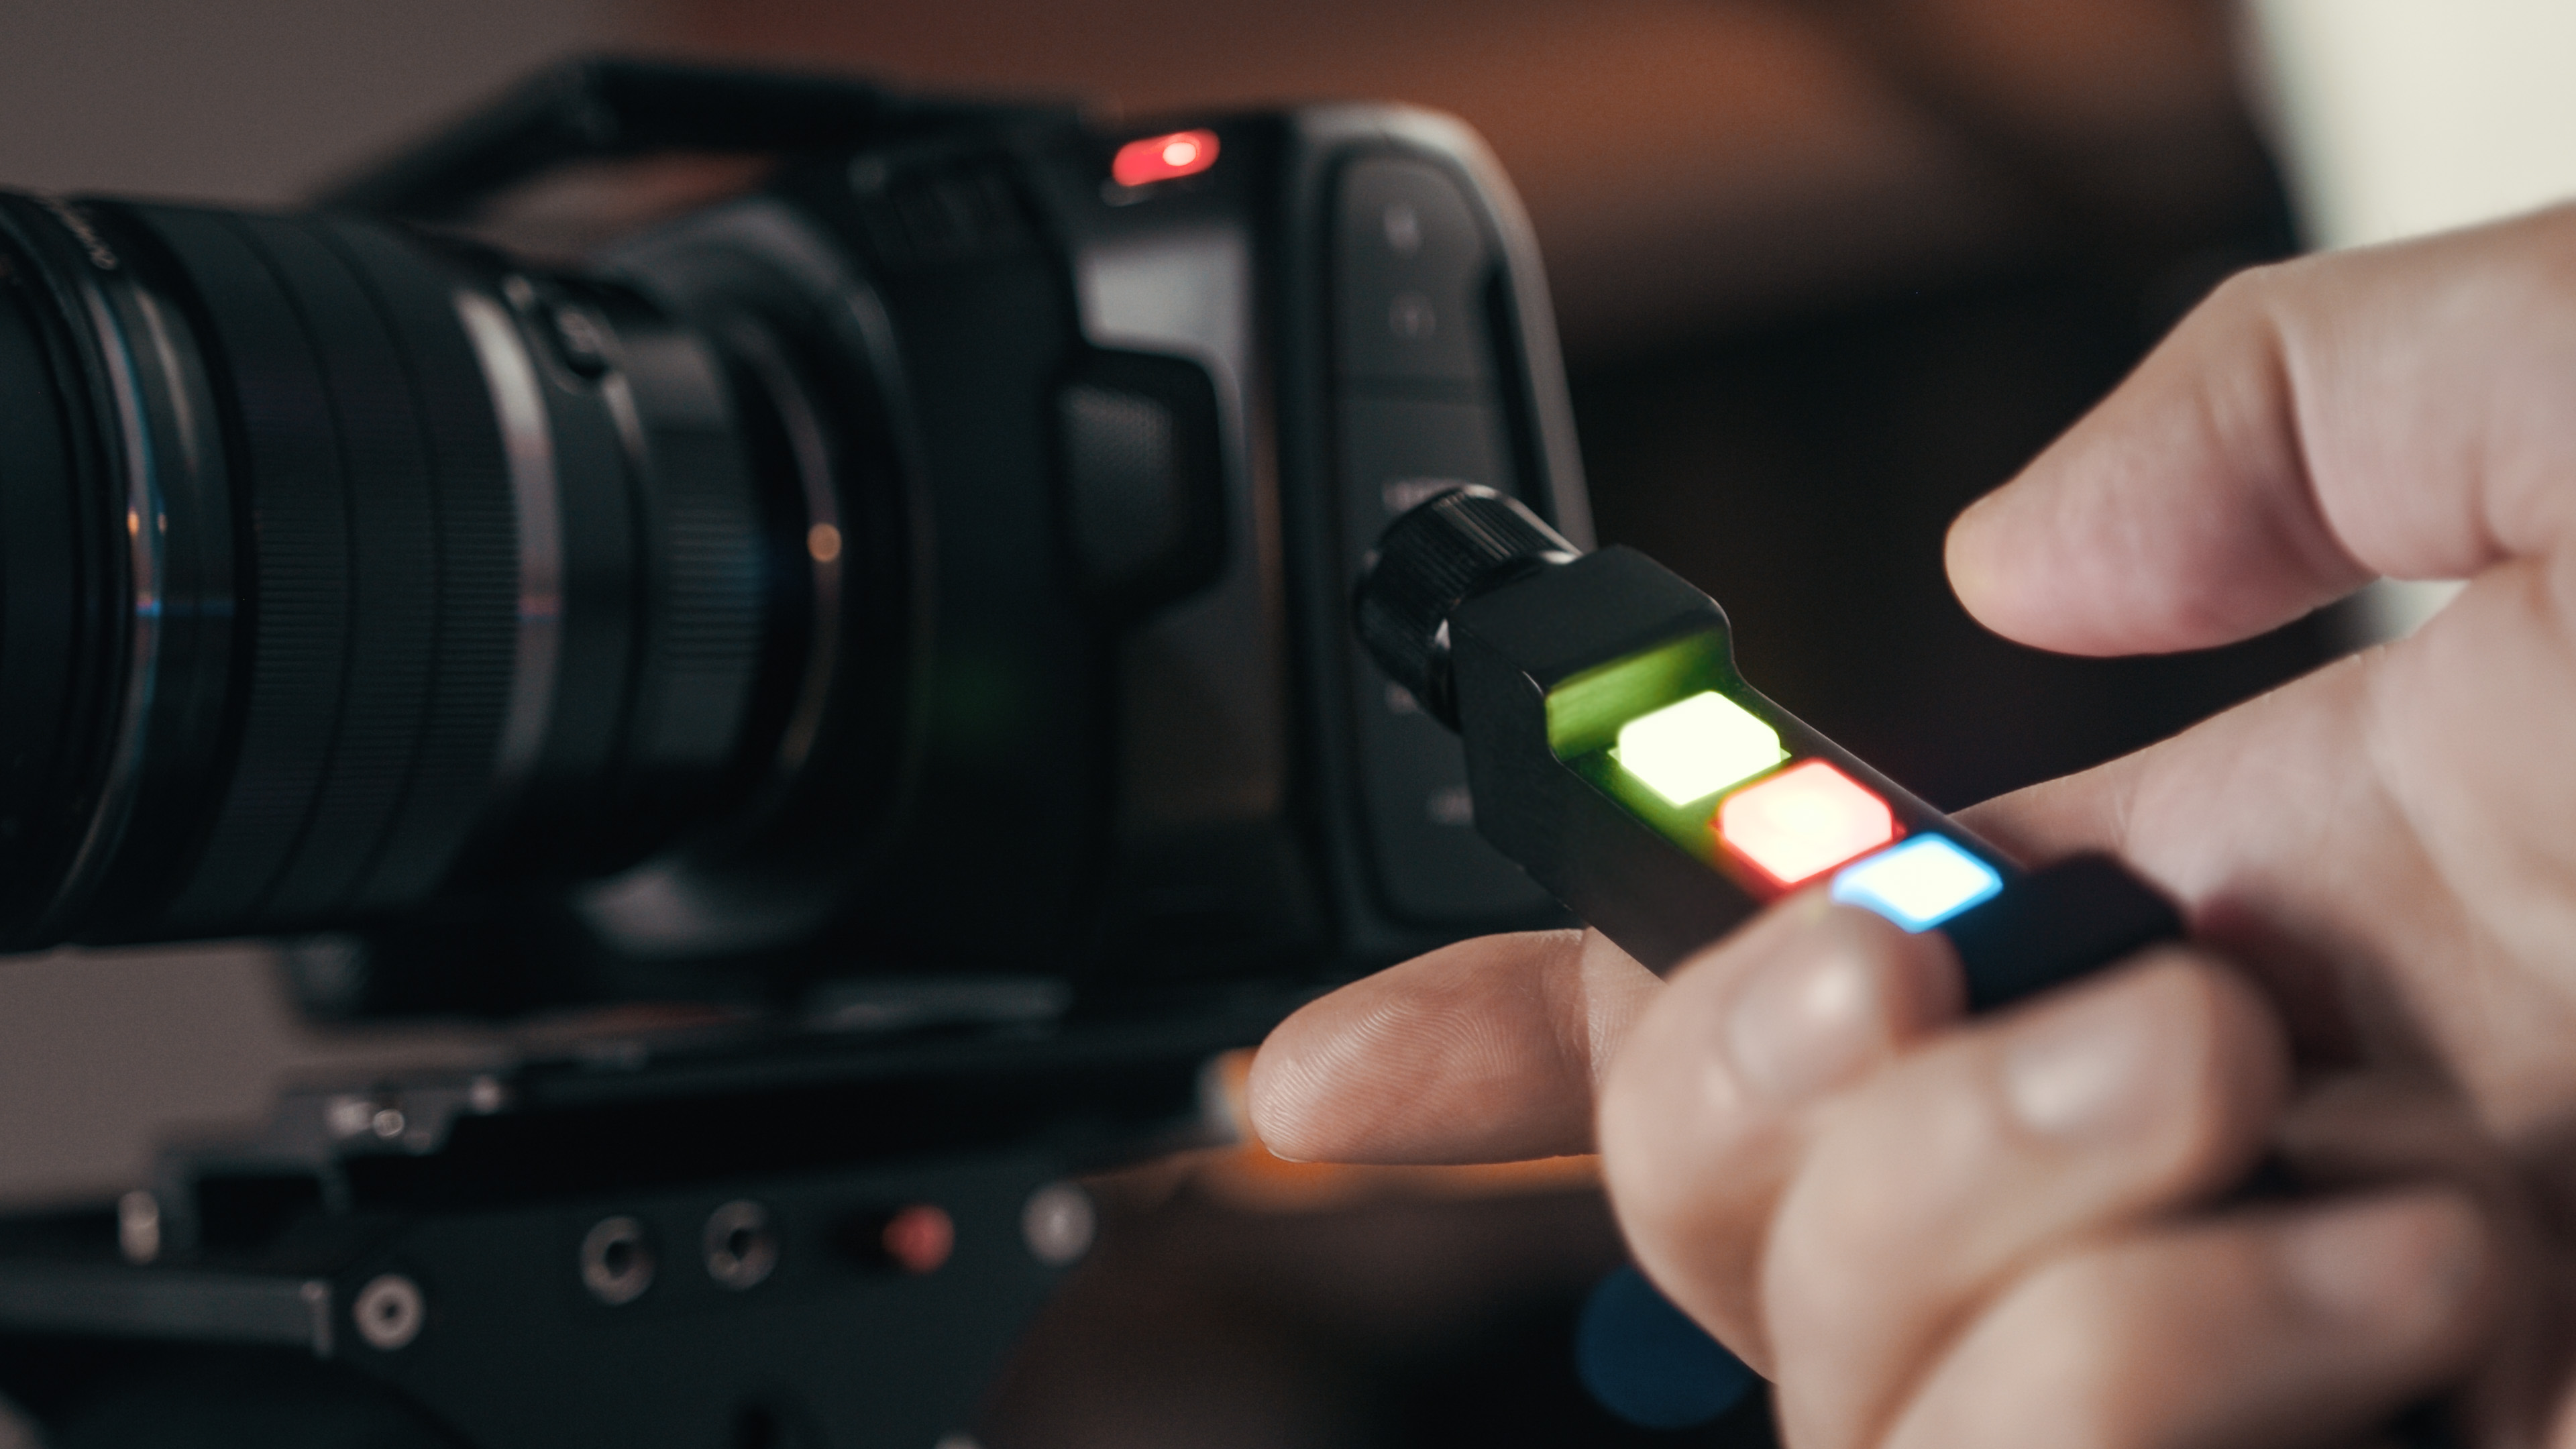 Remote Controller For The Blackmagic Pocket Cinema Camera 4k 6k Bmpcc Zebra Zone